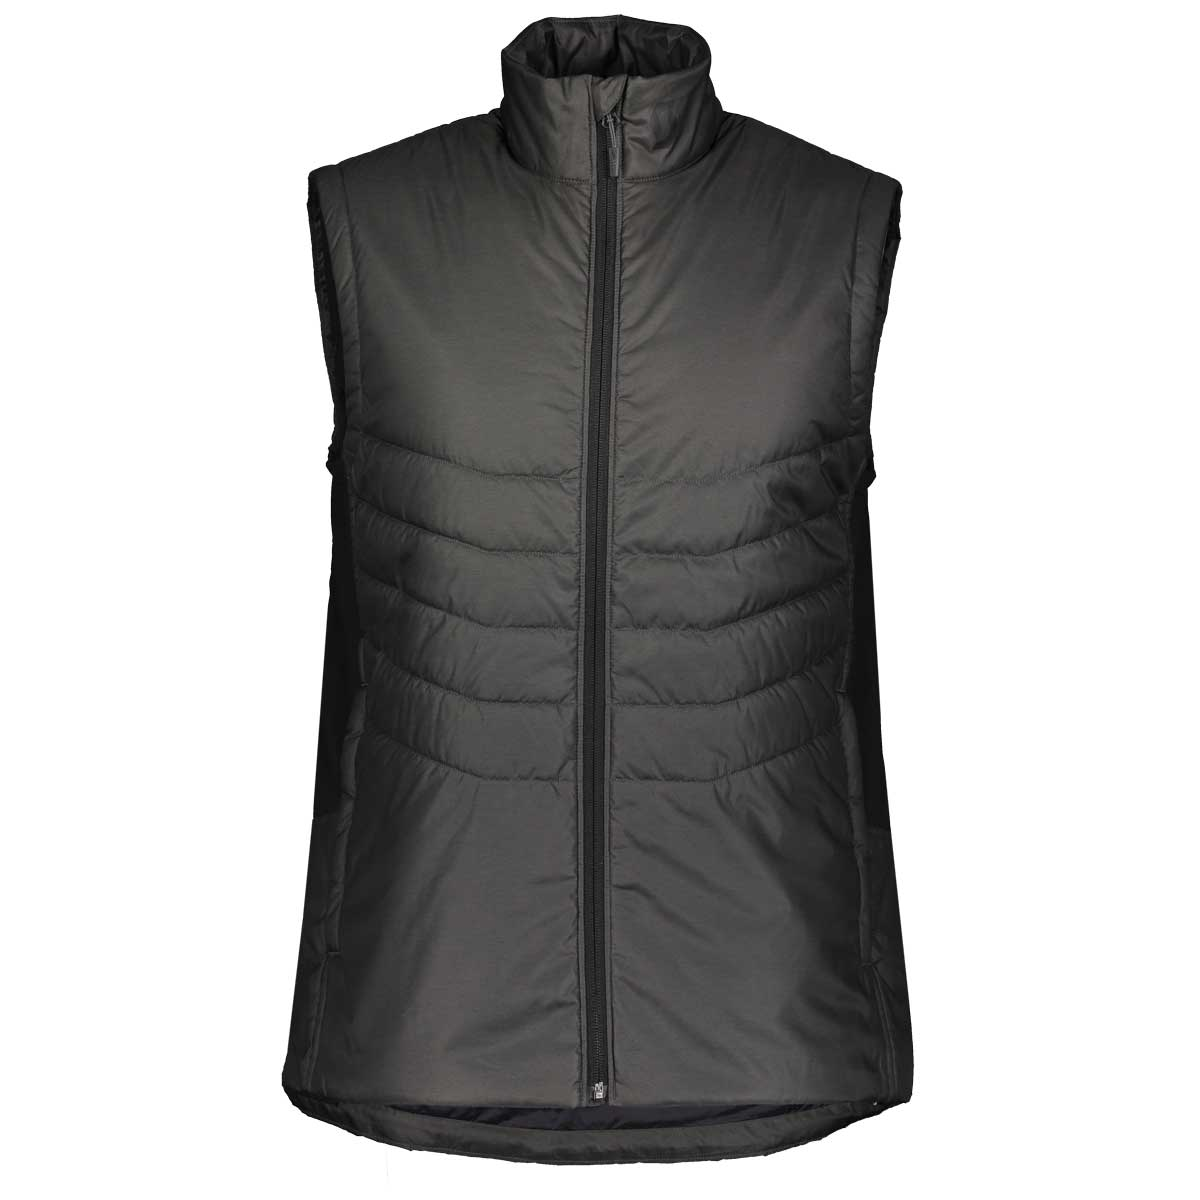 Scott men's insuloft light vest in Dark Grey Melange and Black